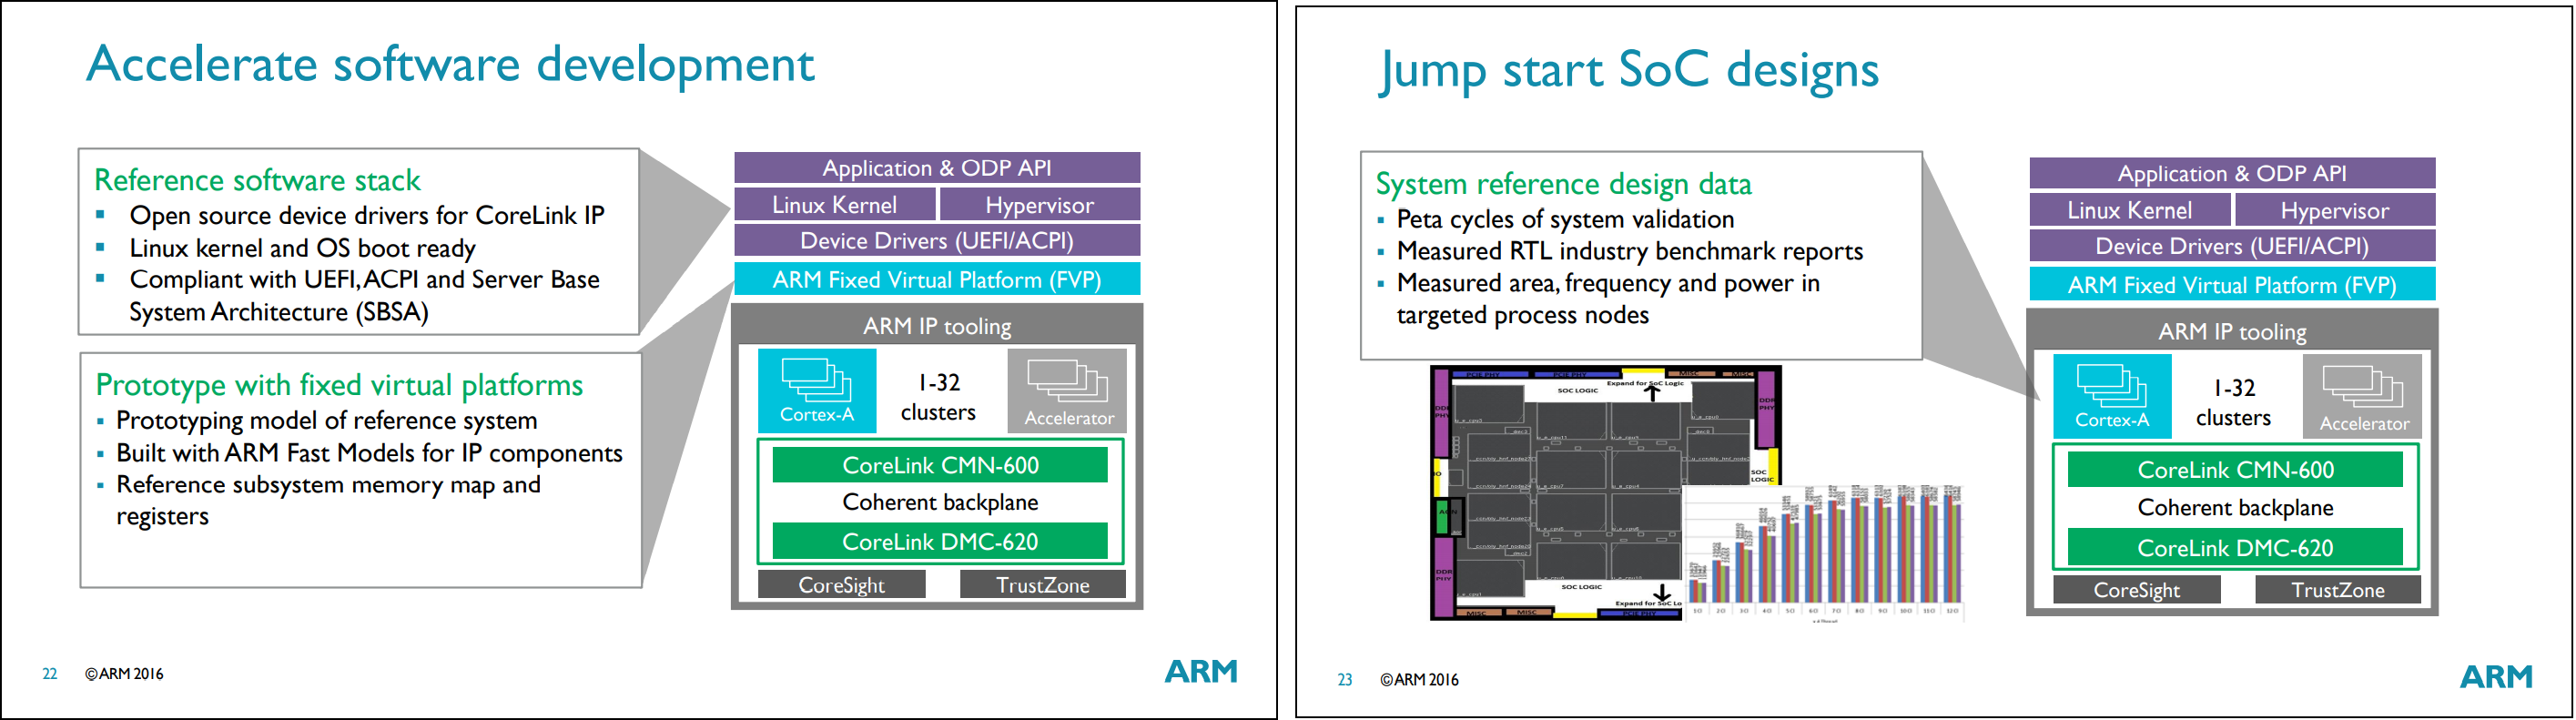 A visual layout of the software and hardware for the Neoverse platform with explanations for each.